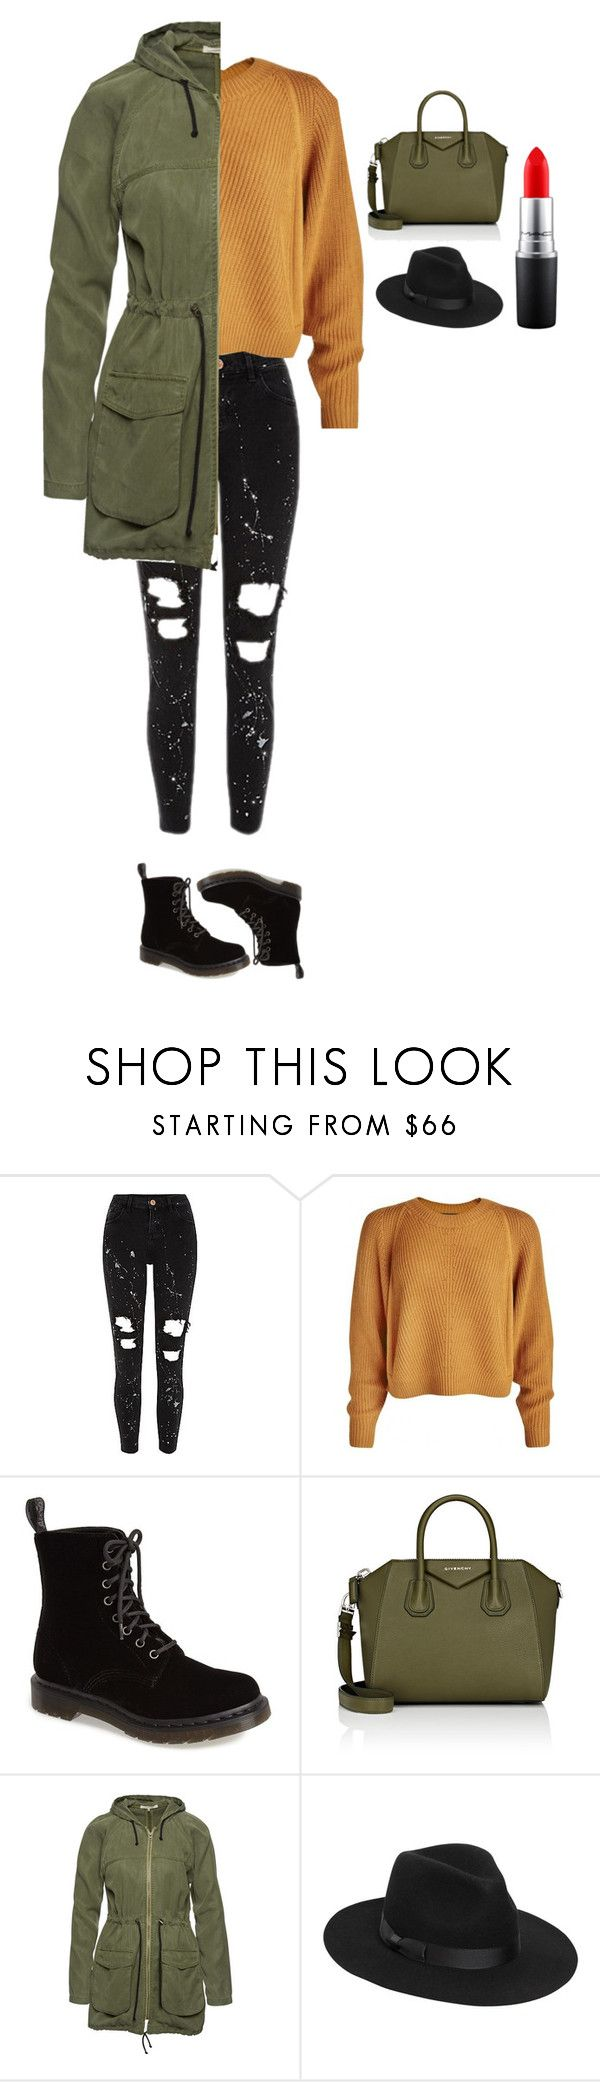 """""""Untitled #354"""" by dutchfashionlover ❤ liked on Polyvore featuring Dr. Martens, Givenchy, Wunderwerk, Lack of Color, MAC Cosmetics and casual"""